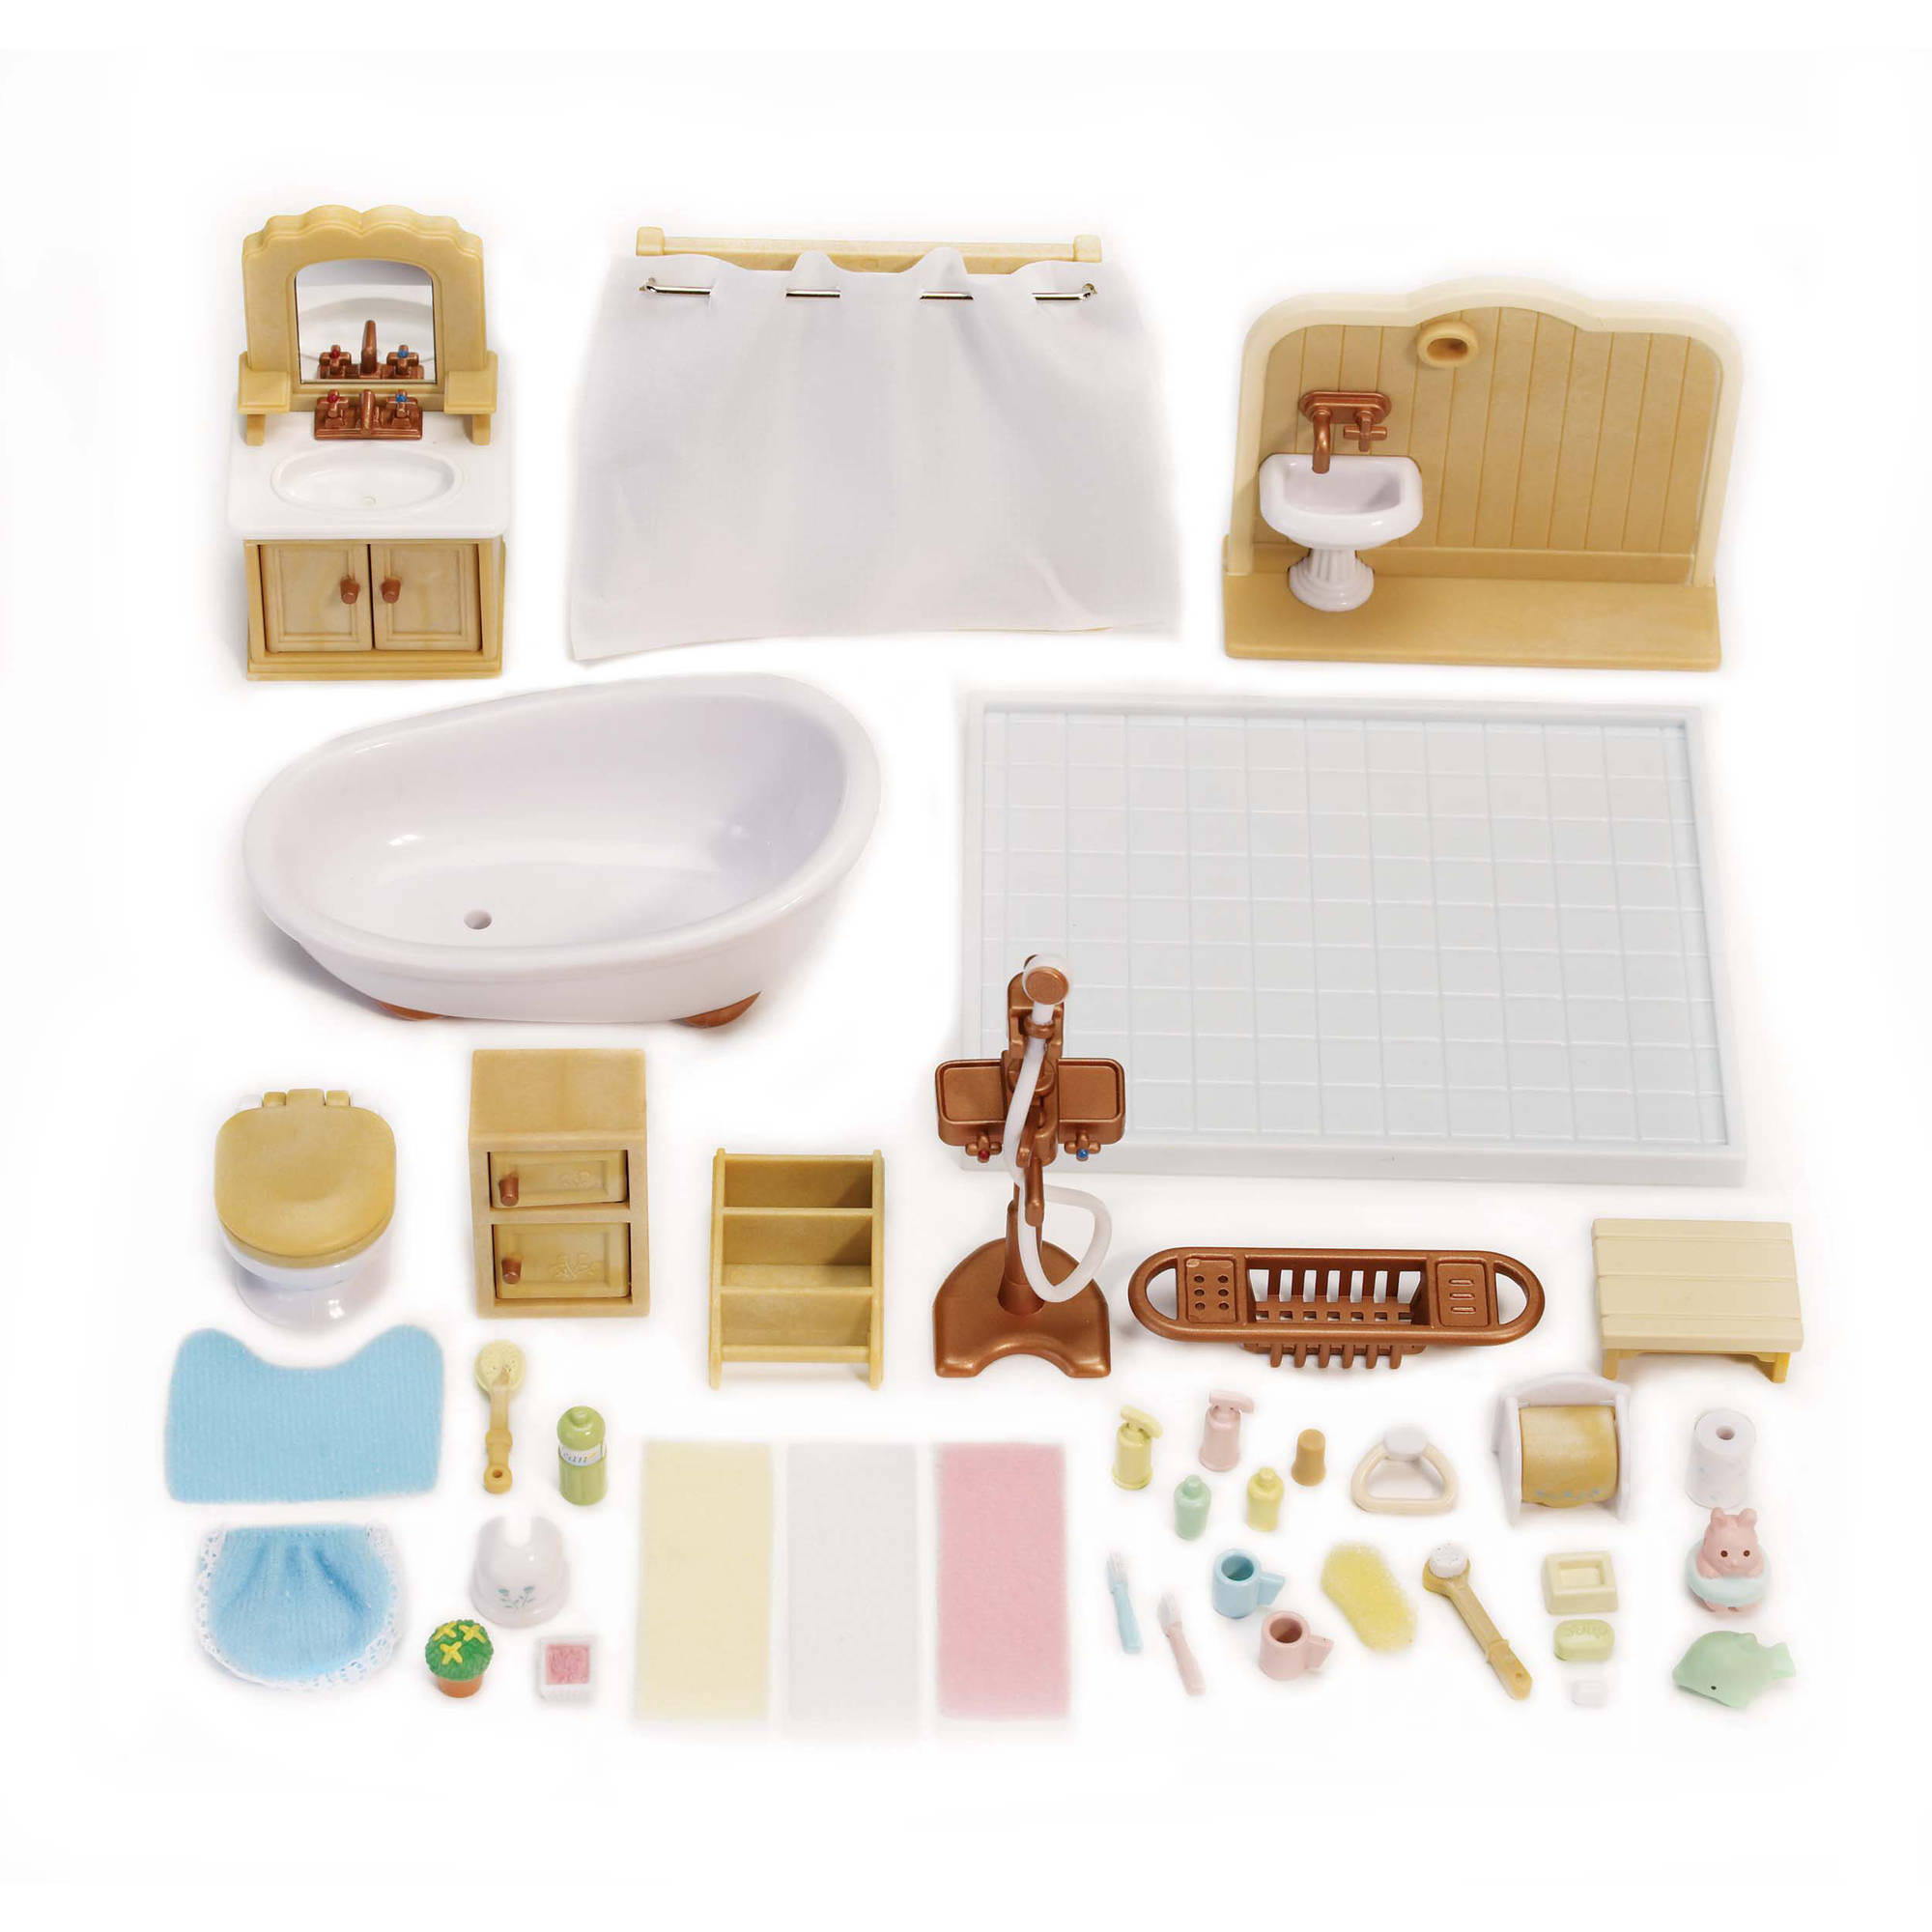 Calico Critters Deluxe Bathroom Set - Walmart.com